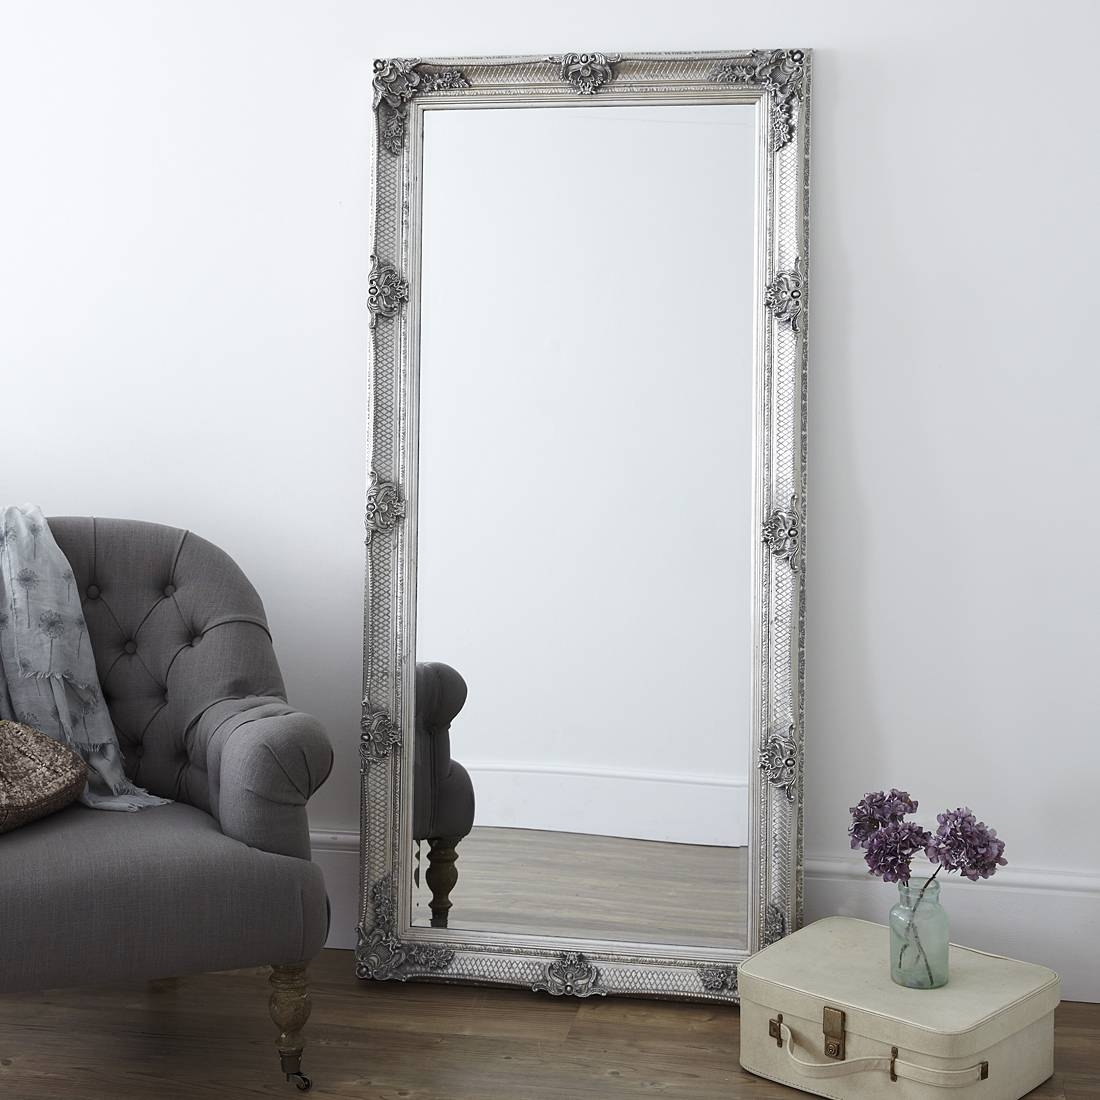 Decorative Antique Silver Full Length Mirror – Primrose & Plum regarding Silver Full Length Mirrors (Image 4 of 15)